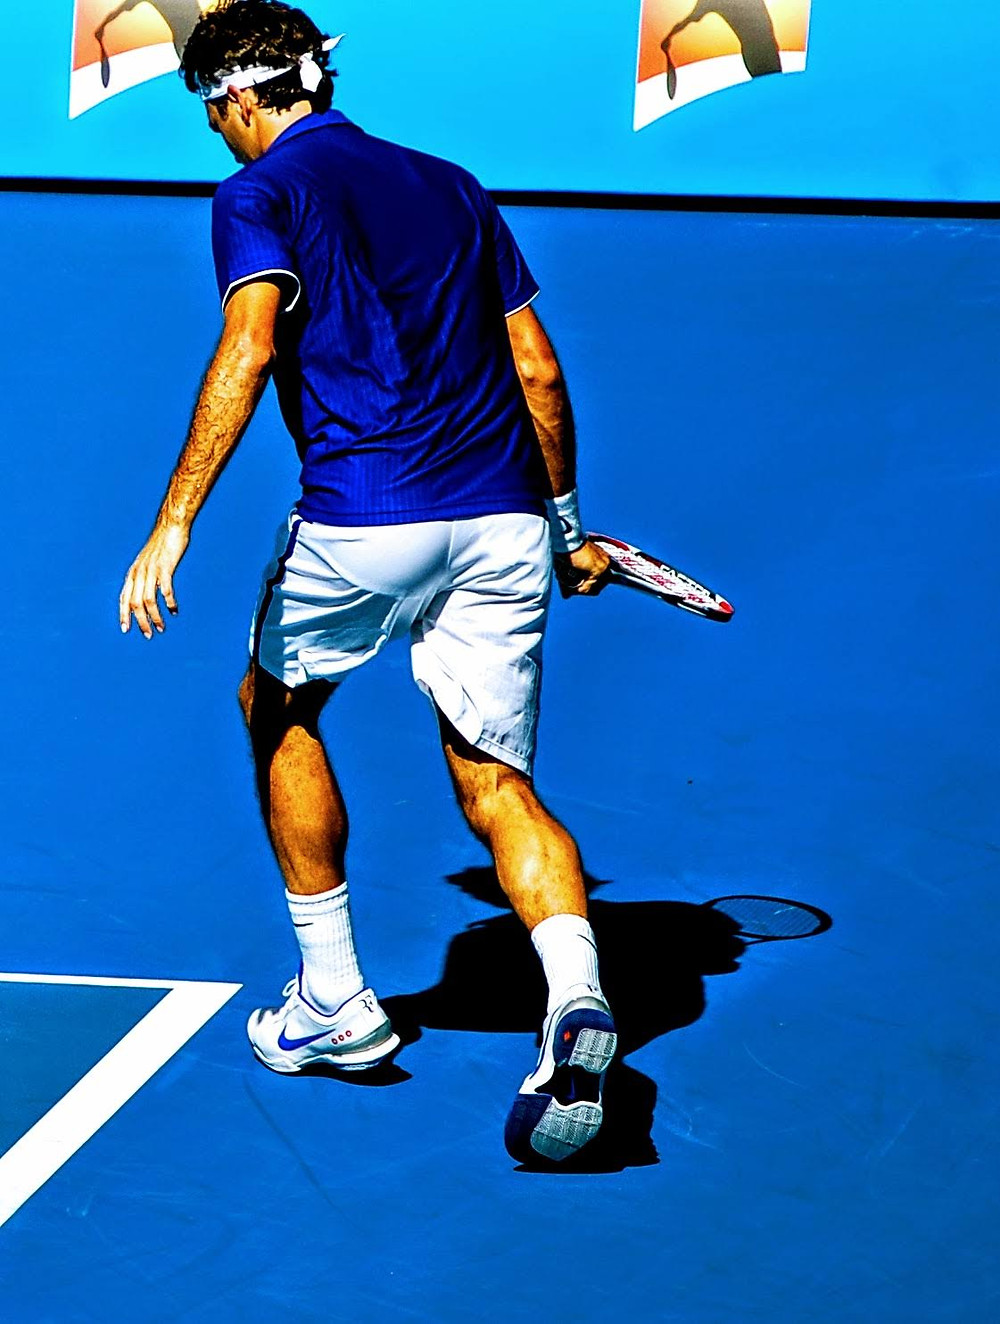 Roger Federer at the 2009 Australian Open